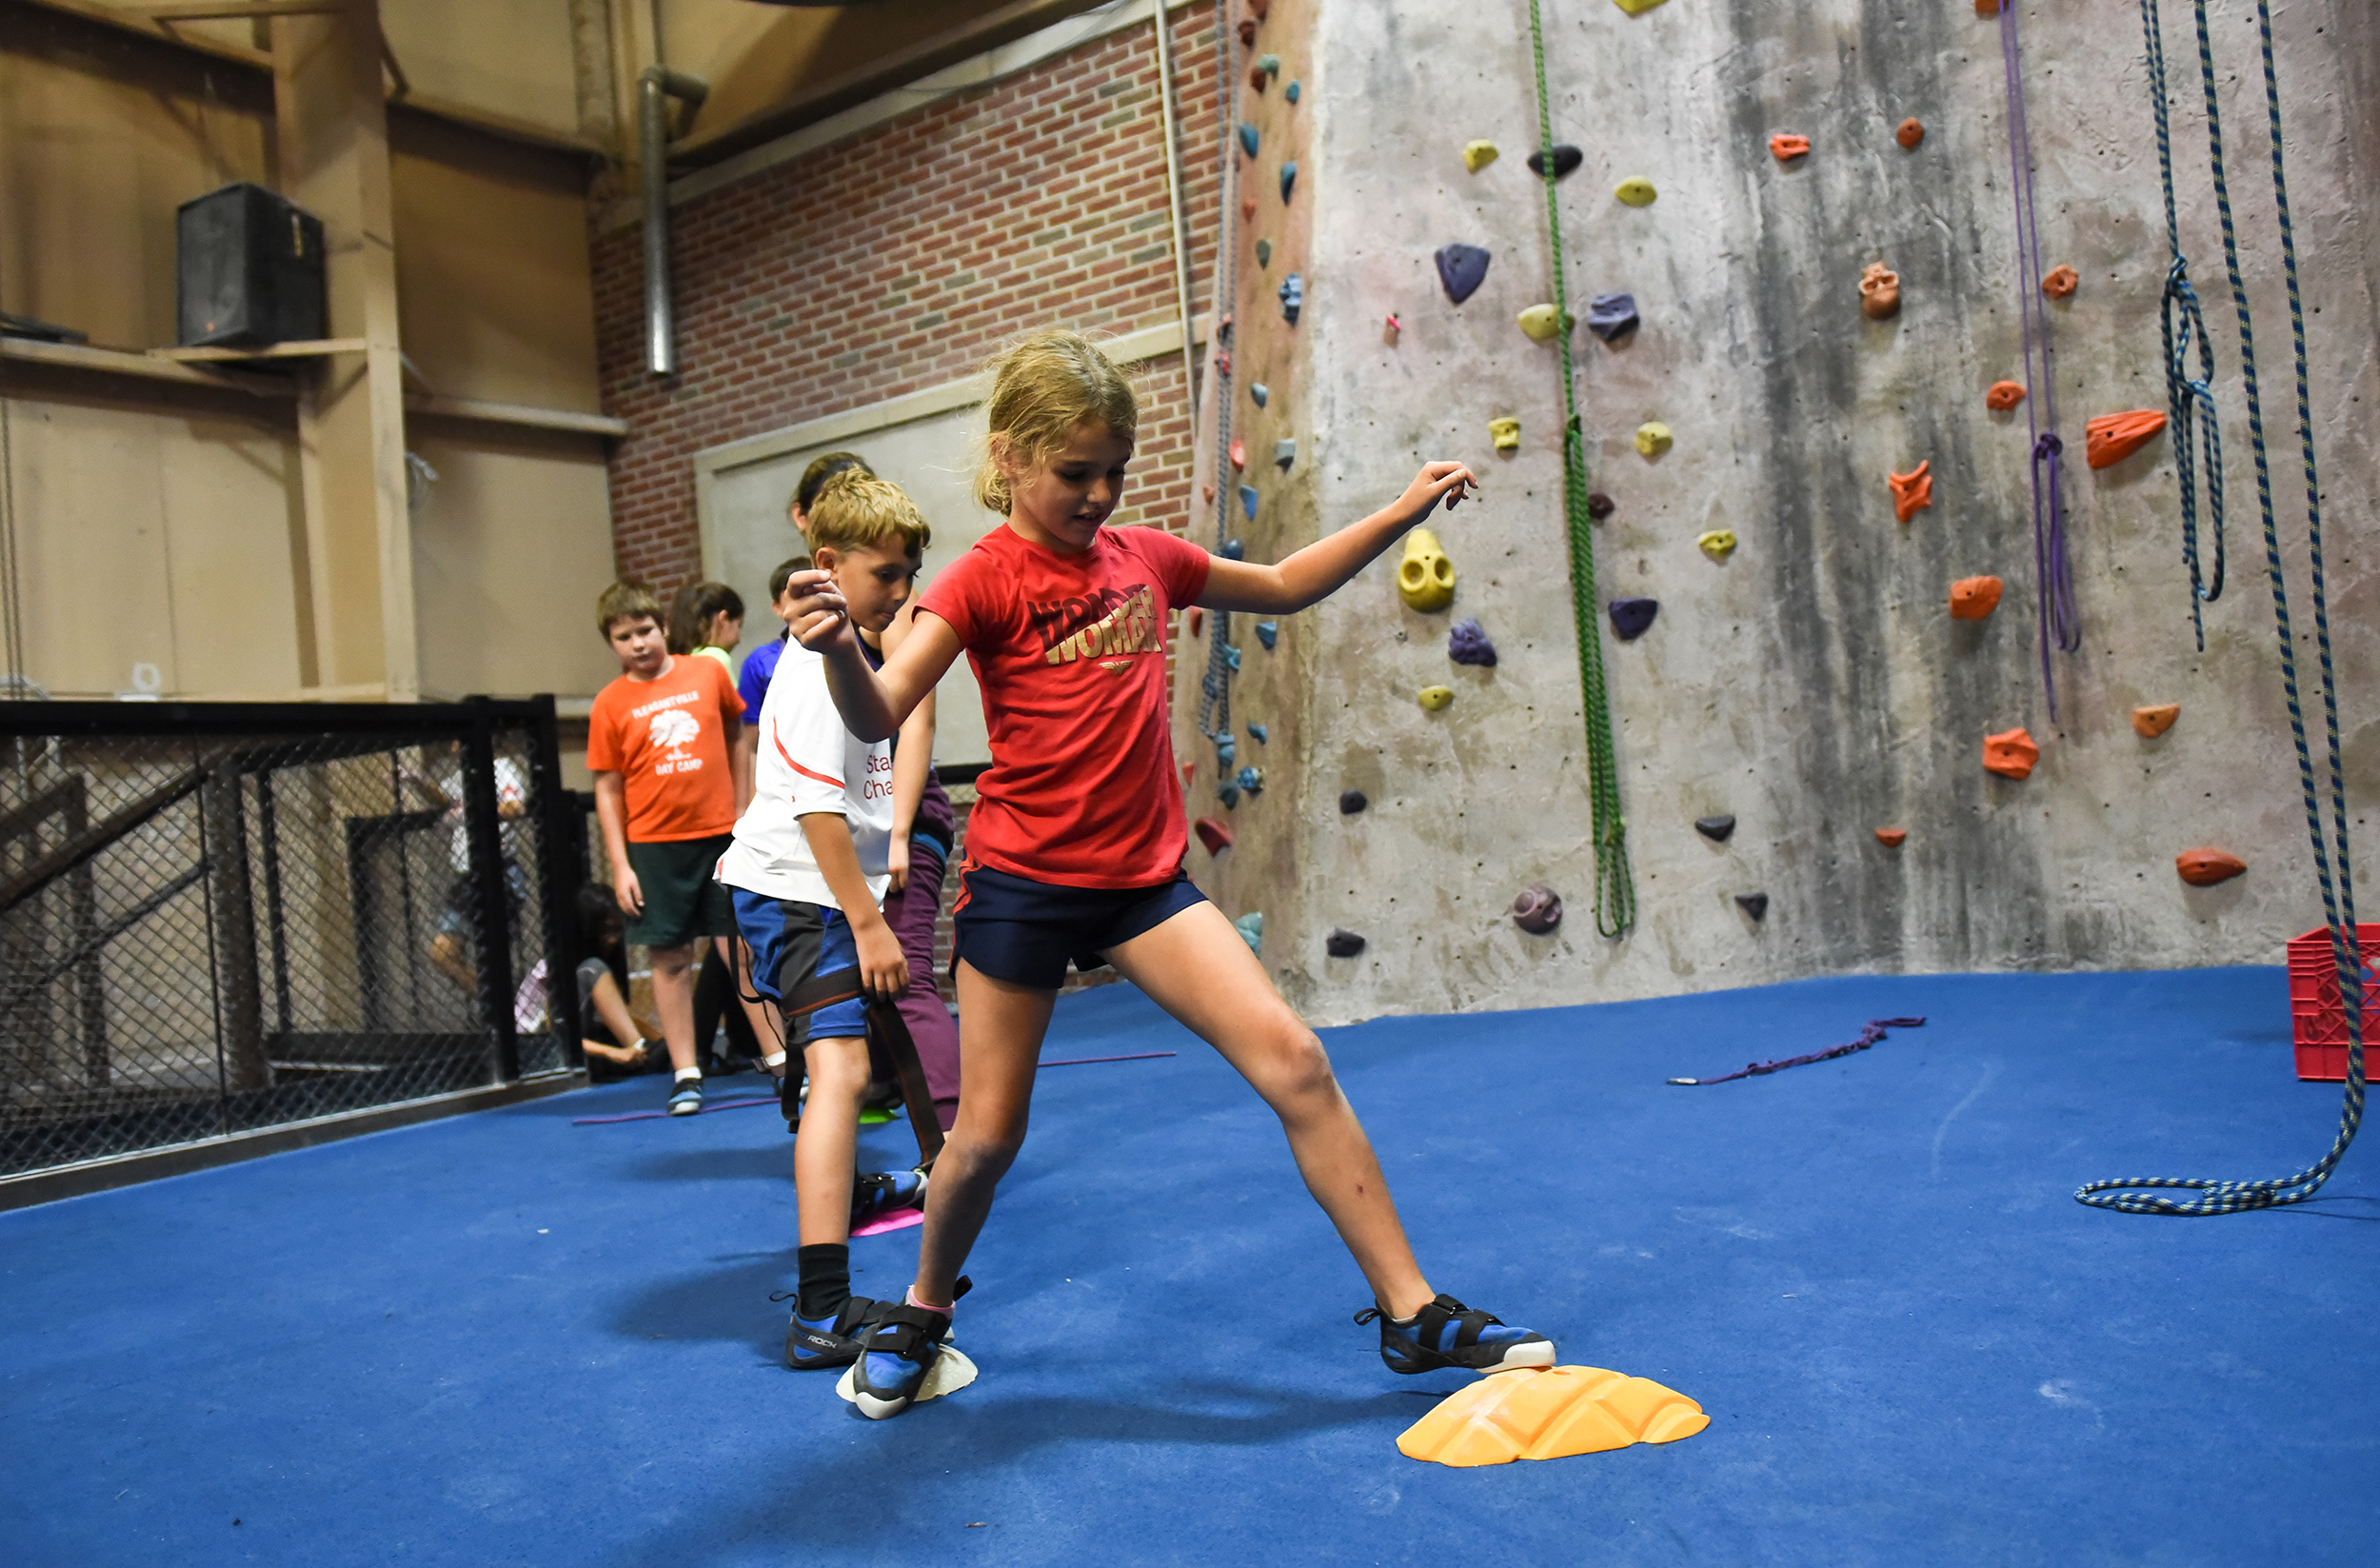 Life Skills - Our youth climbers are charged with being active participants in their success: they are challenged to think critically and creatively and collaborate with their peers to solve complex problems. This builds responsibility, independence, and a team mentality.